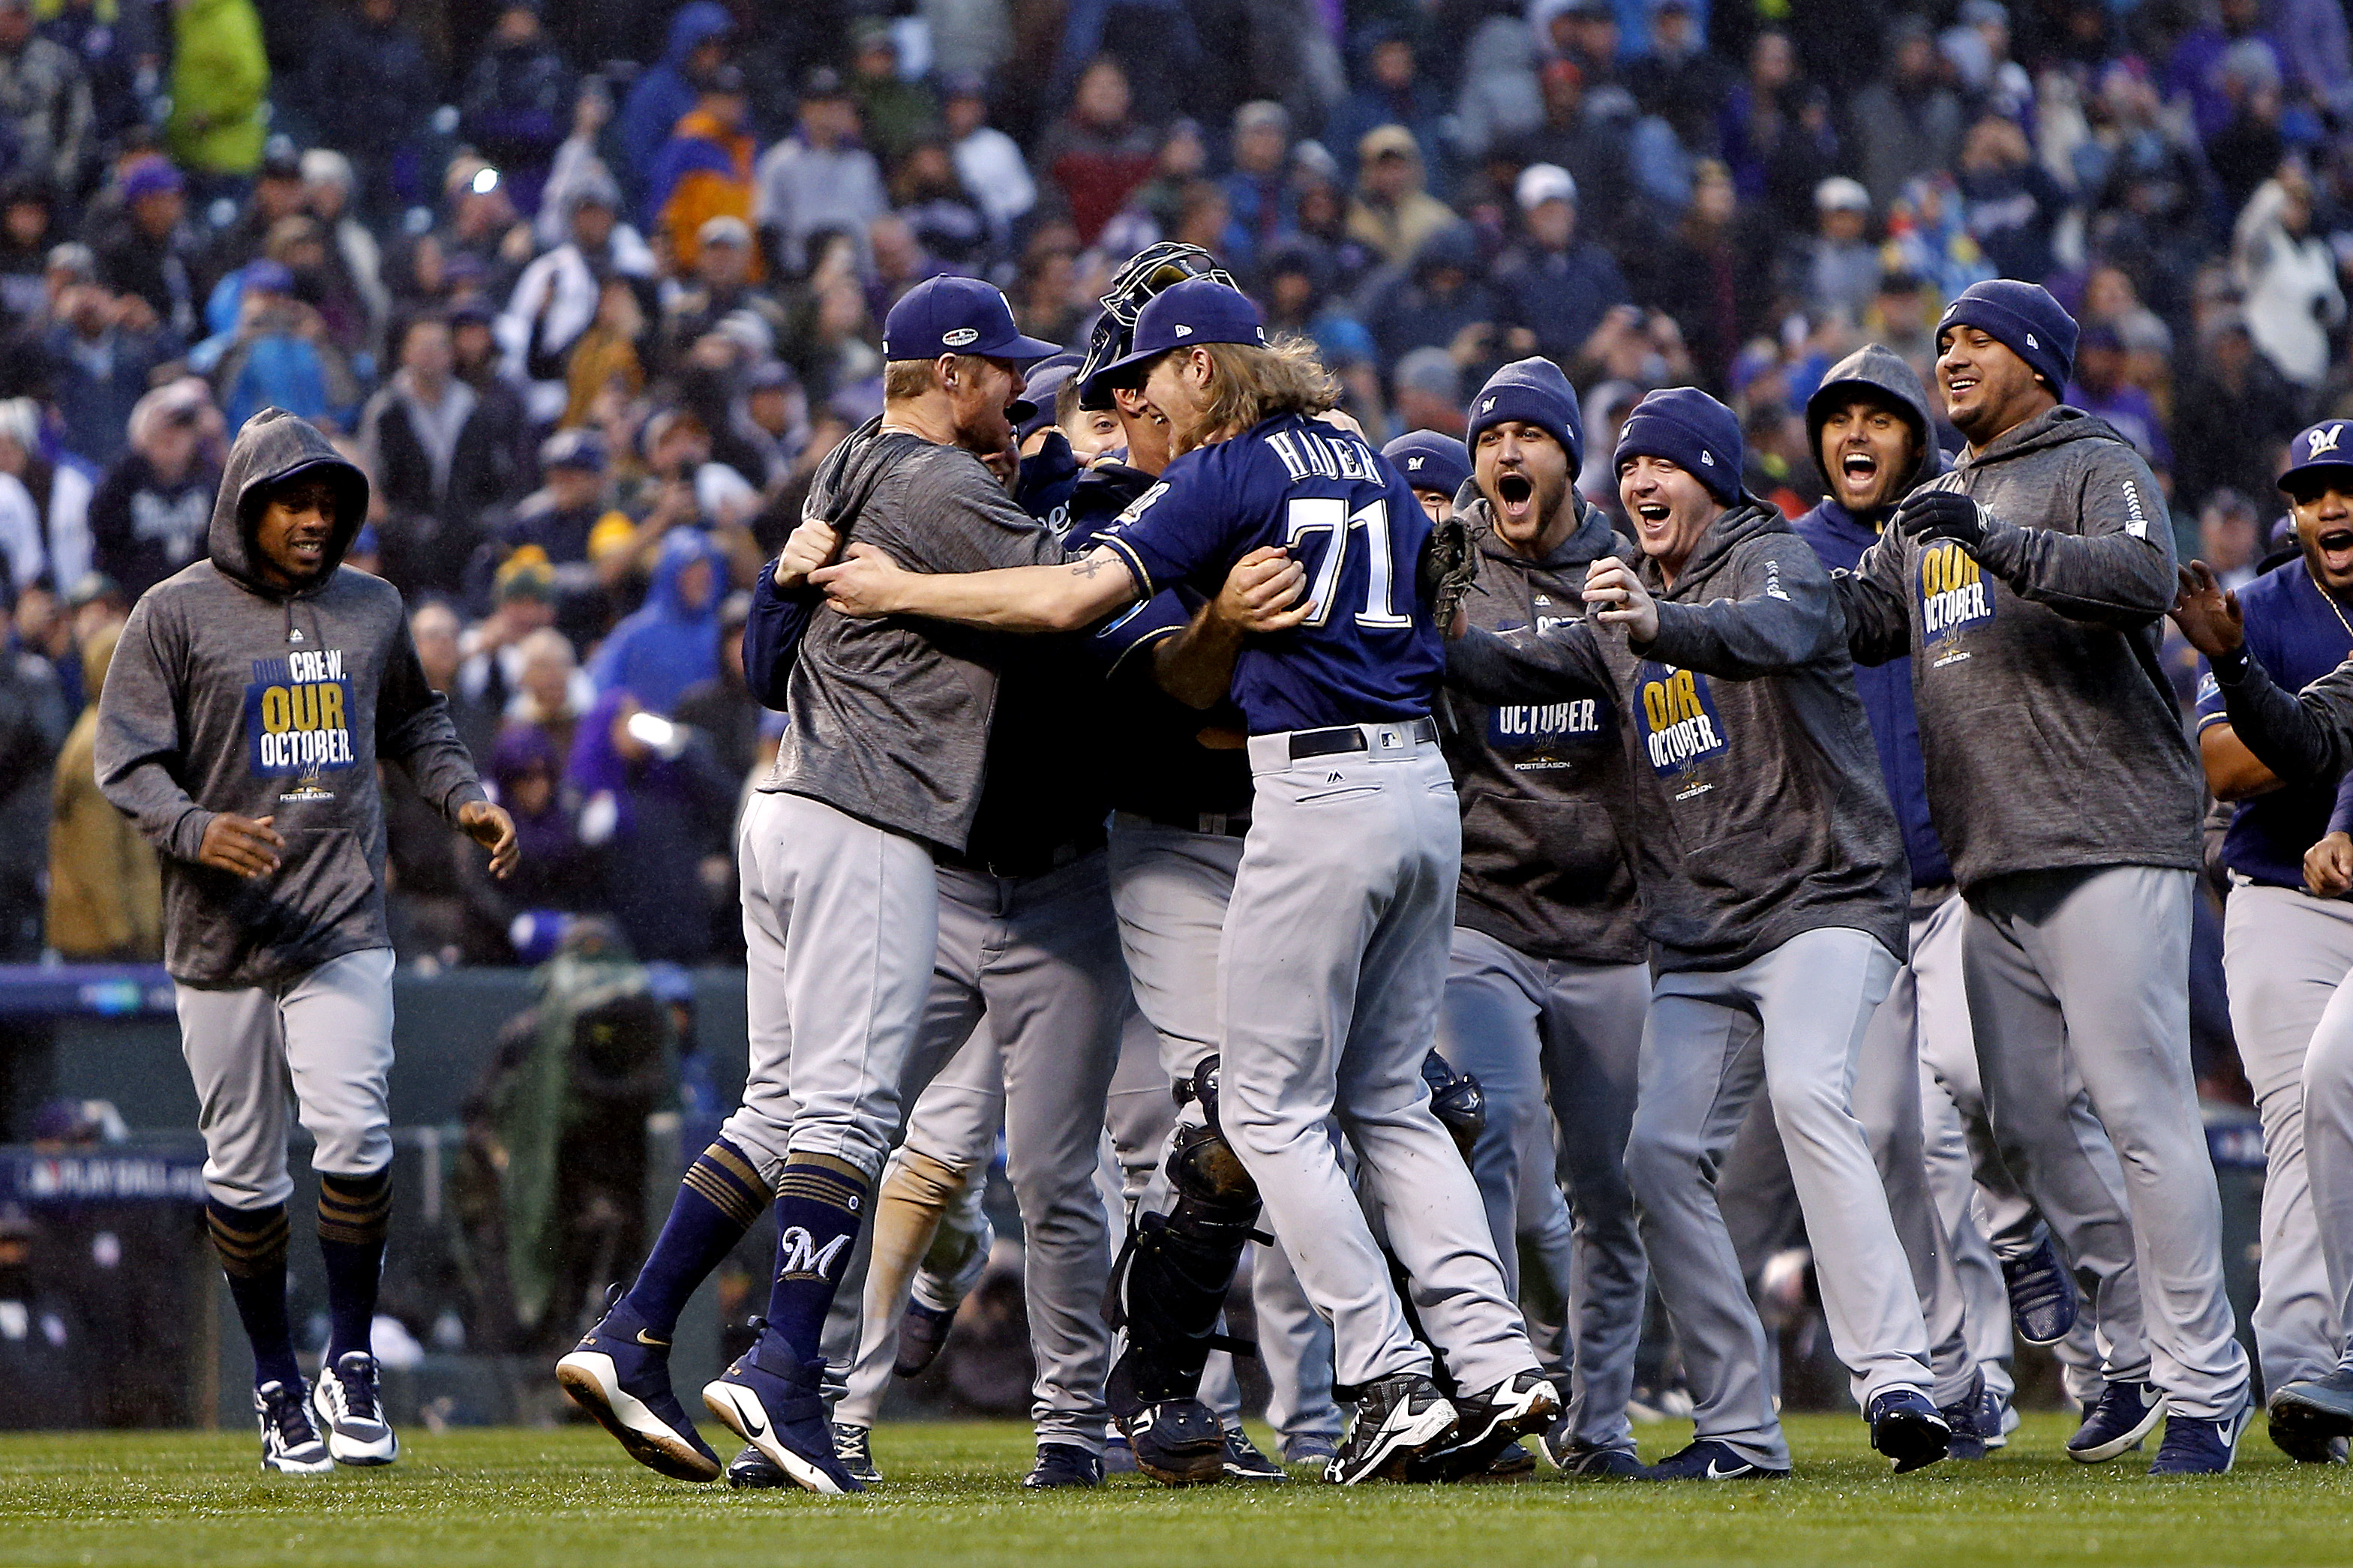 Oct 7, 2018; Denver, CO, USA; The Milwaukee Brewers celebrates after beating the Colorado Rockies in game three of the 2018 NLDS playoff baseball series at Coors Field. Mandatory Credit: Russell Lansford-USA TODAY Sports